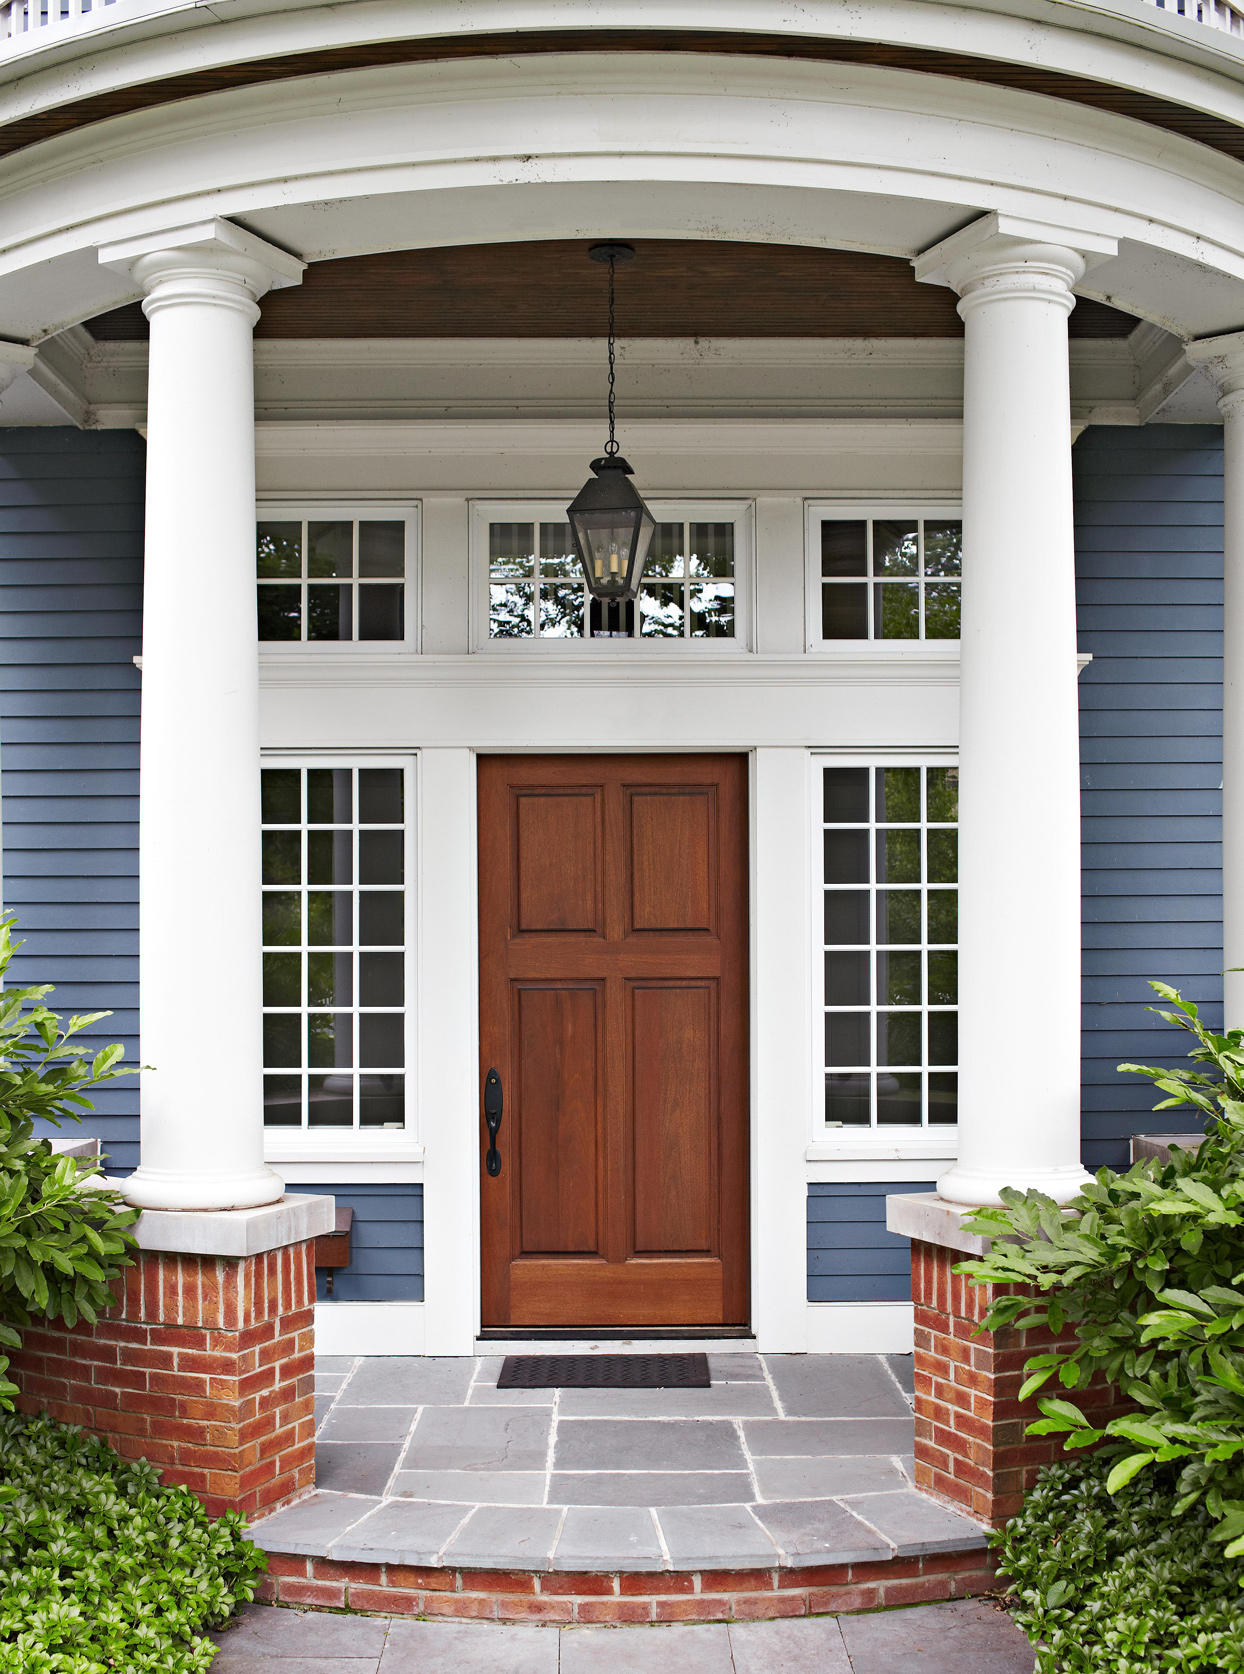 20 Entry Window Design Ideas That Add Character Indoors And Out Better Homes Gardens